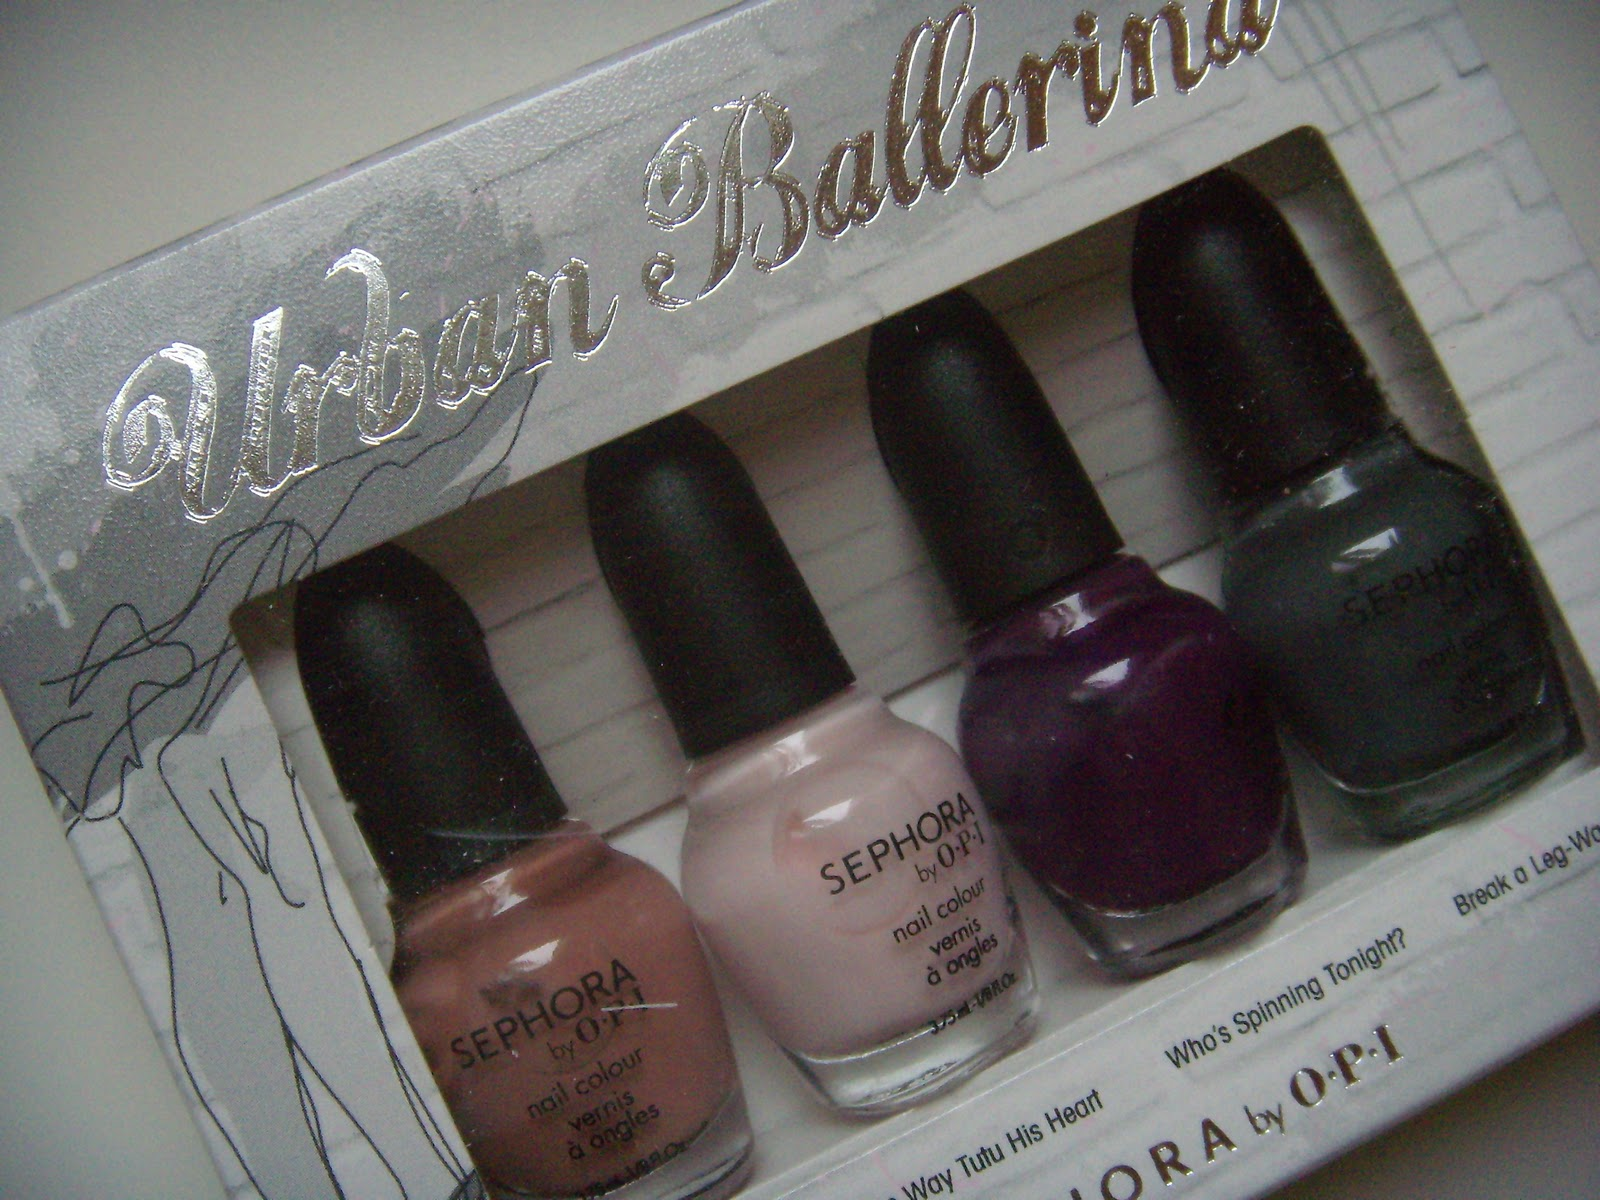 ... Ballerina collection- the perfect balance of nude and trendy shades!